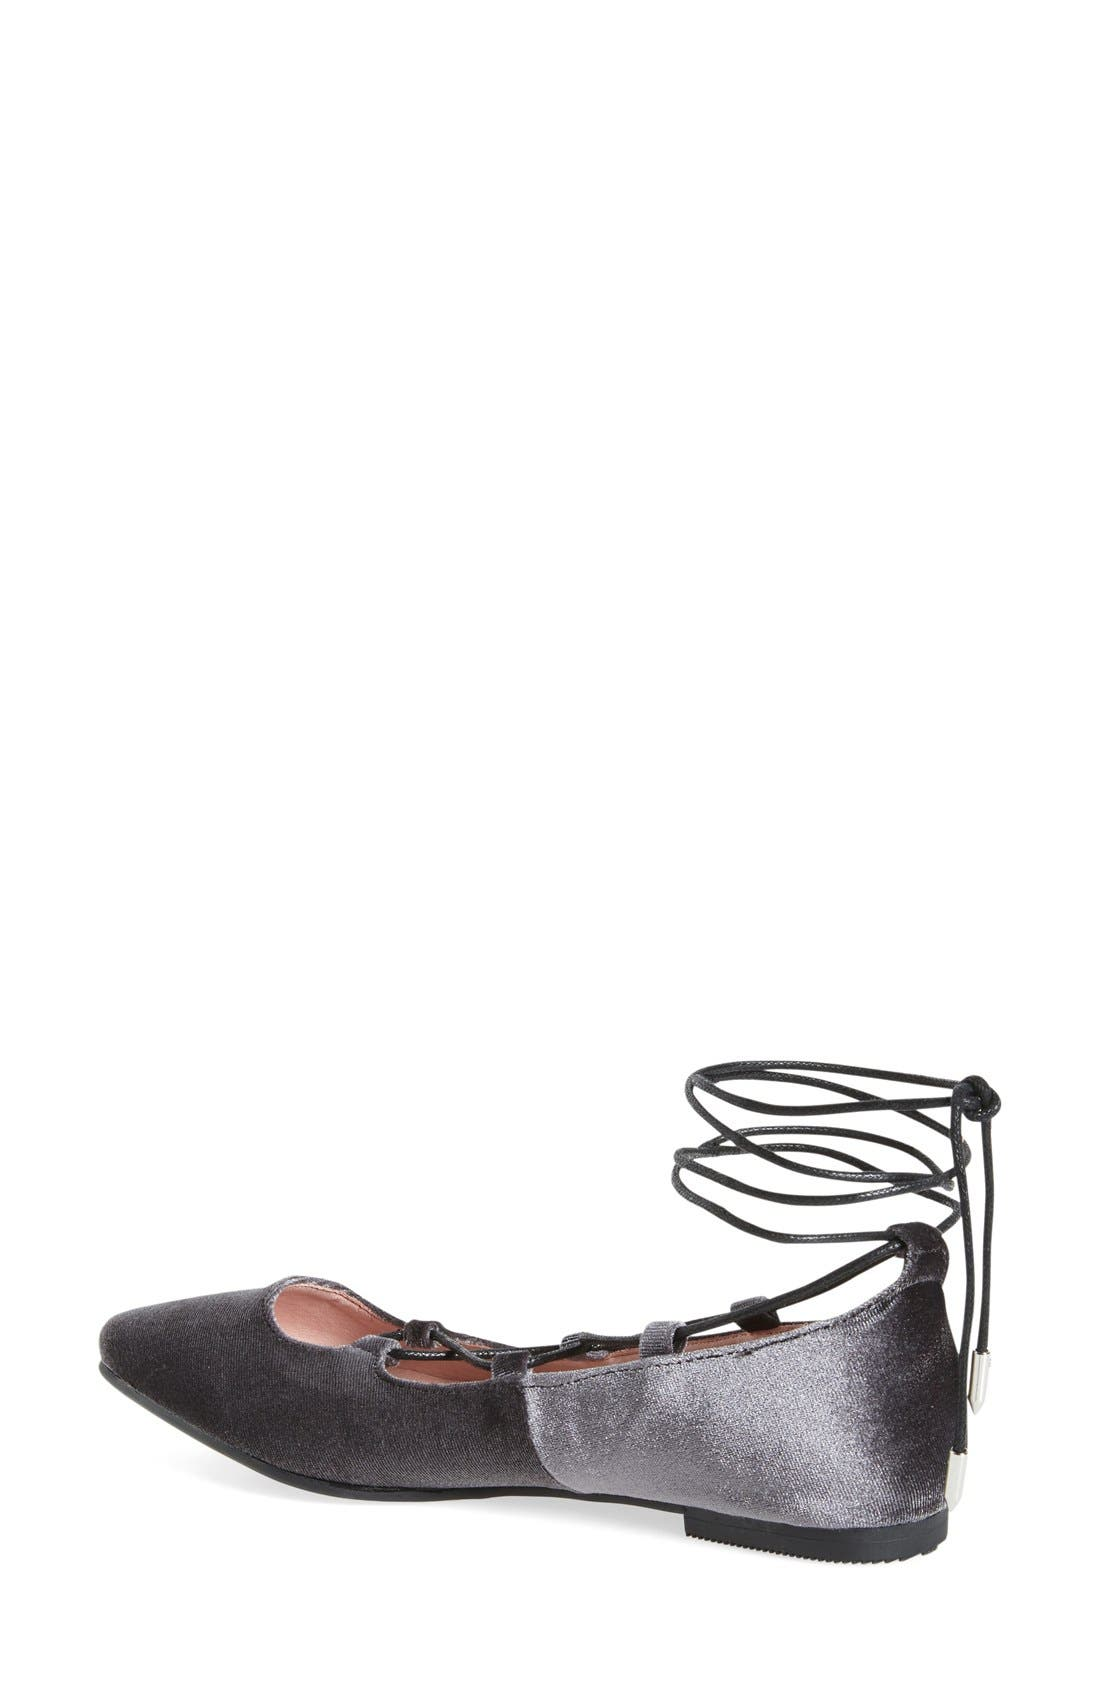 Alternate Image 2  - Chinese Laundry Endless Summer Pointy Toe Ghillie Flat (Women)